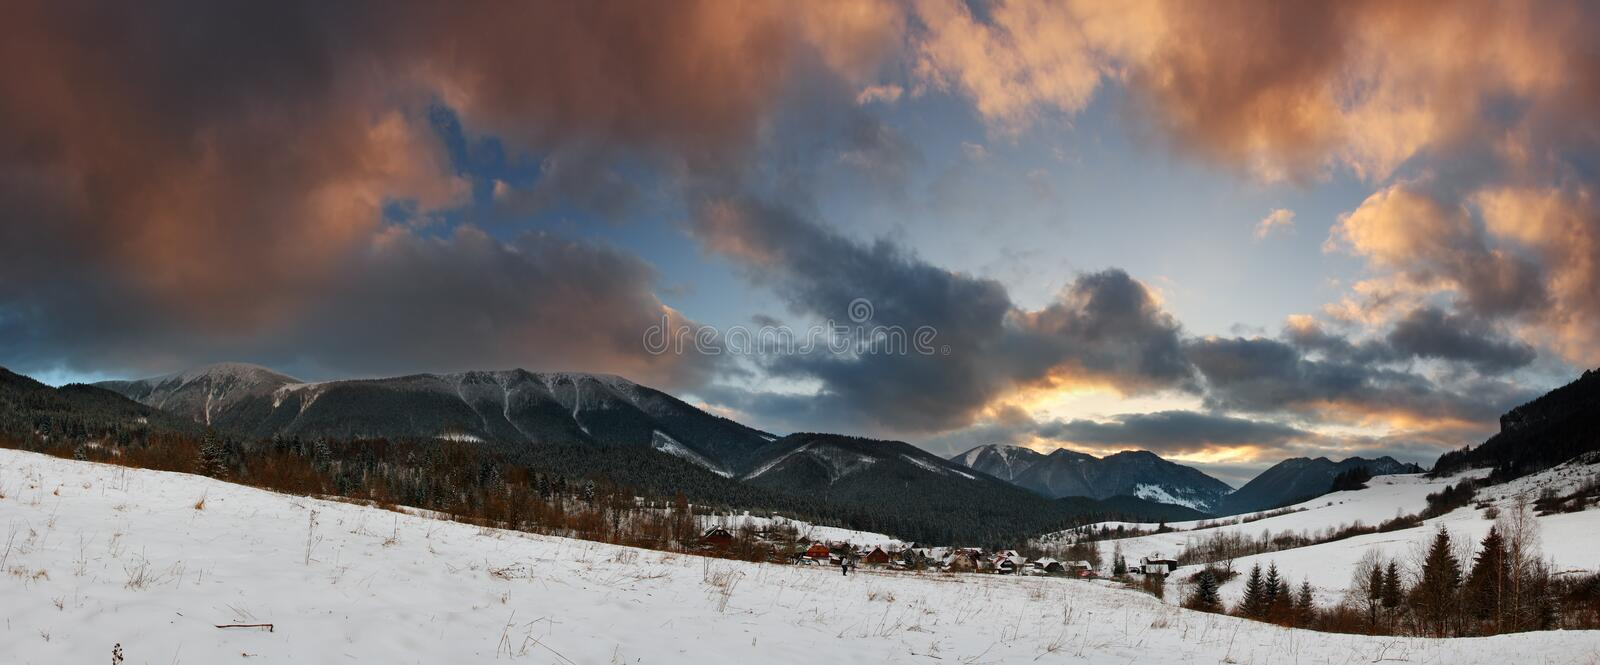 Panorama do inverno nas montanhas fotografia de stock royalty free